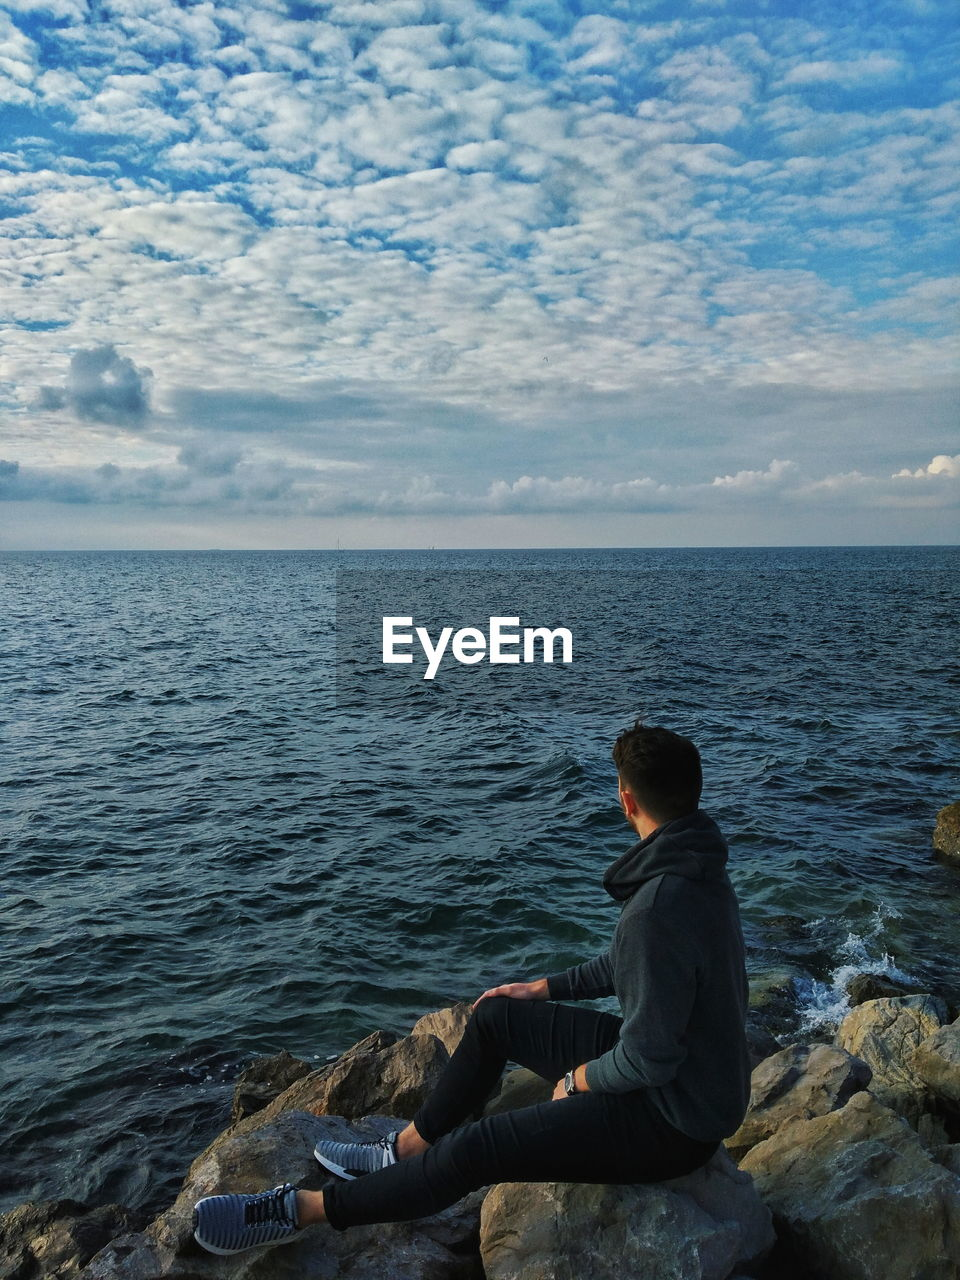 sea, water, one person, sitting, real people, leisure activity, beauty in nature, lifestyles, scenics - nature, sky, horizon, horizon over water, rock, rock - object, solid, cloud - sky, nature, relaxation, tranquility, outdoors, looking at view